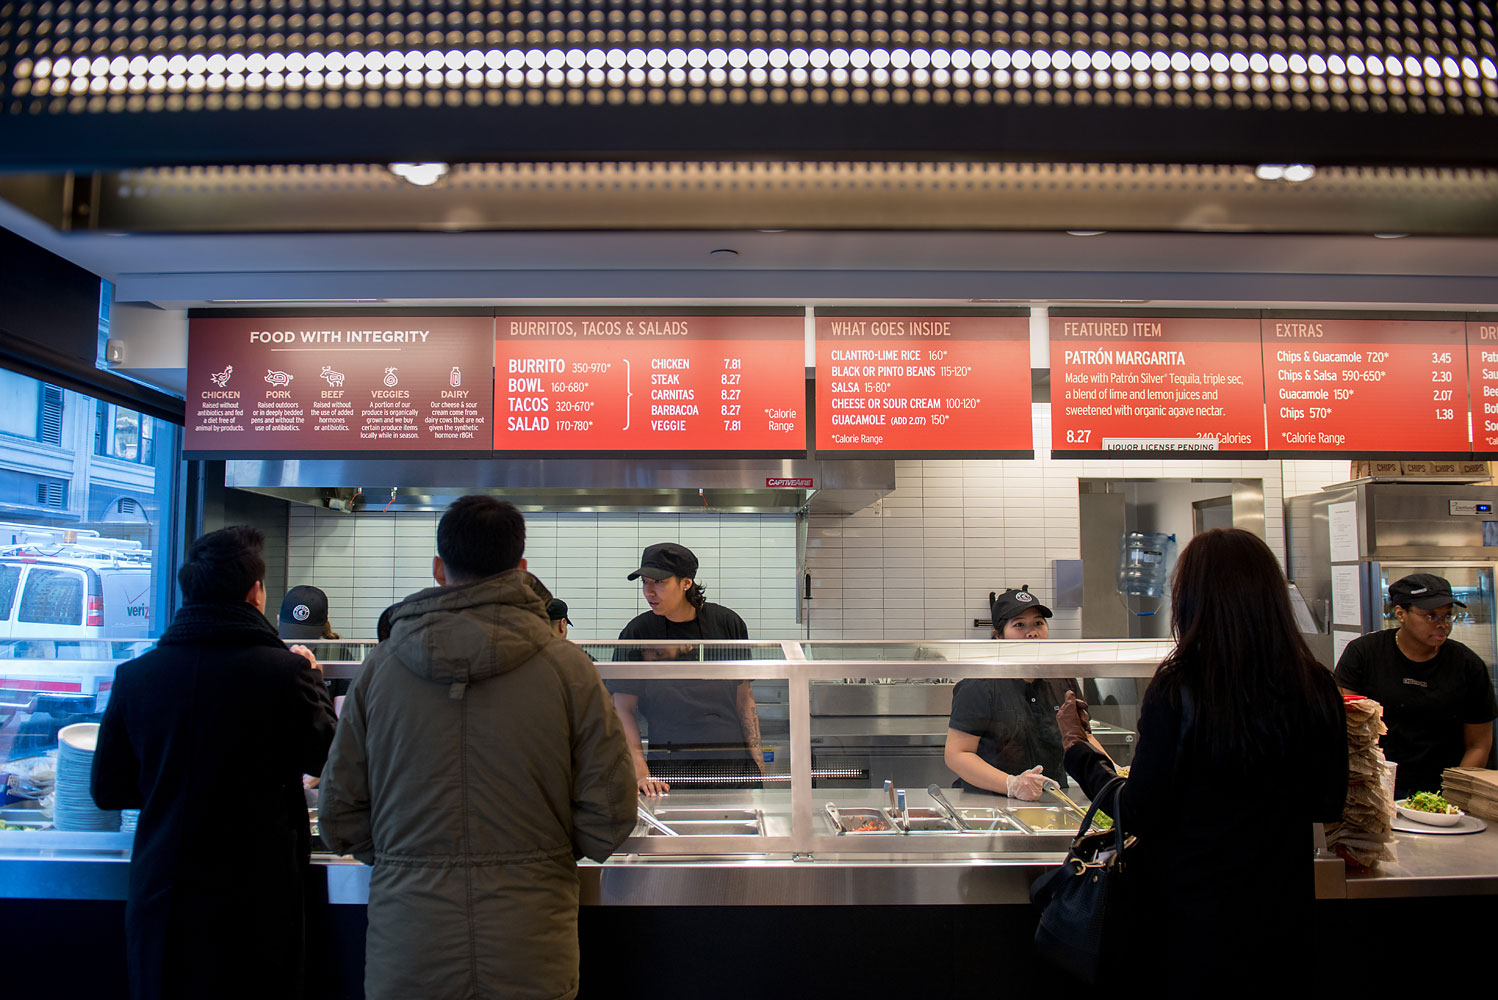 Lunchtime activites at Chipotle Mexican Grill's Madison Square Park Location in New York, Jan. 29, 2014.